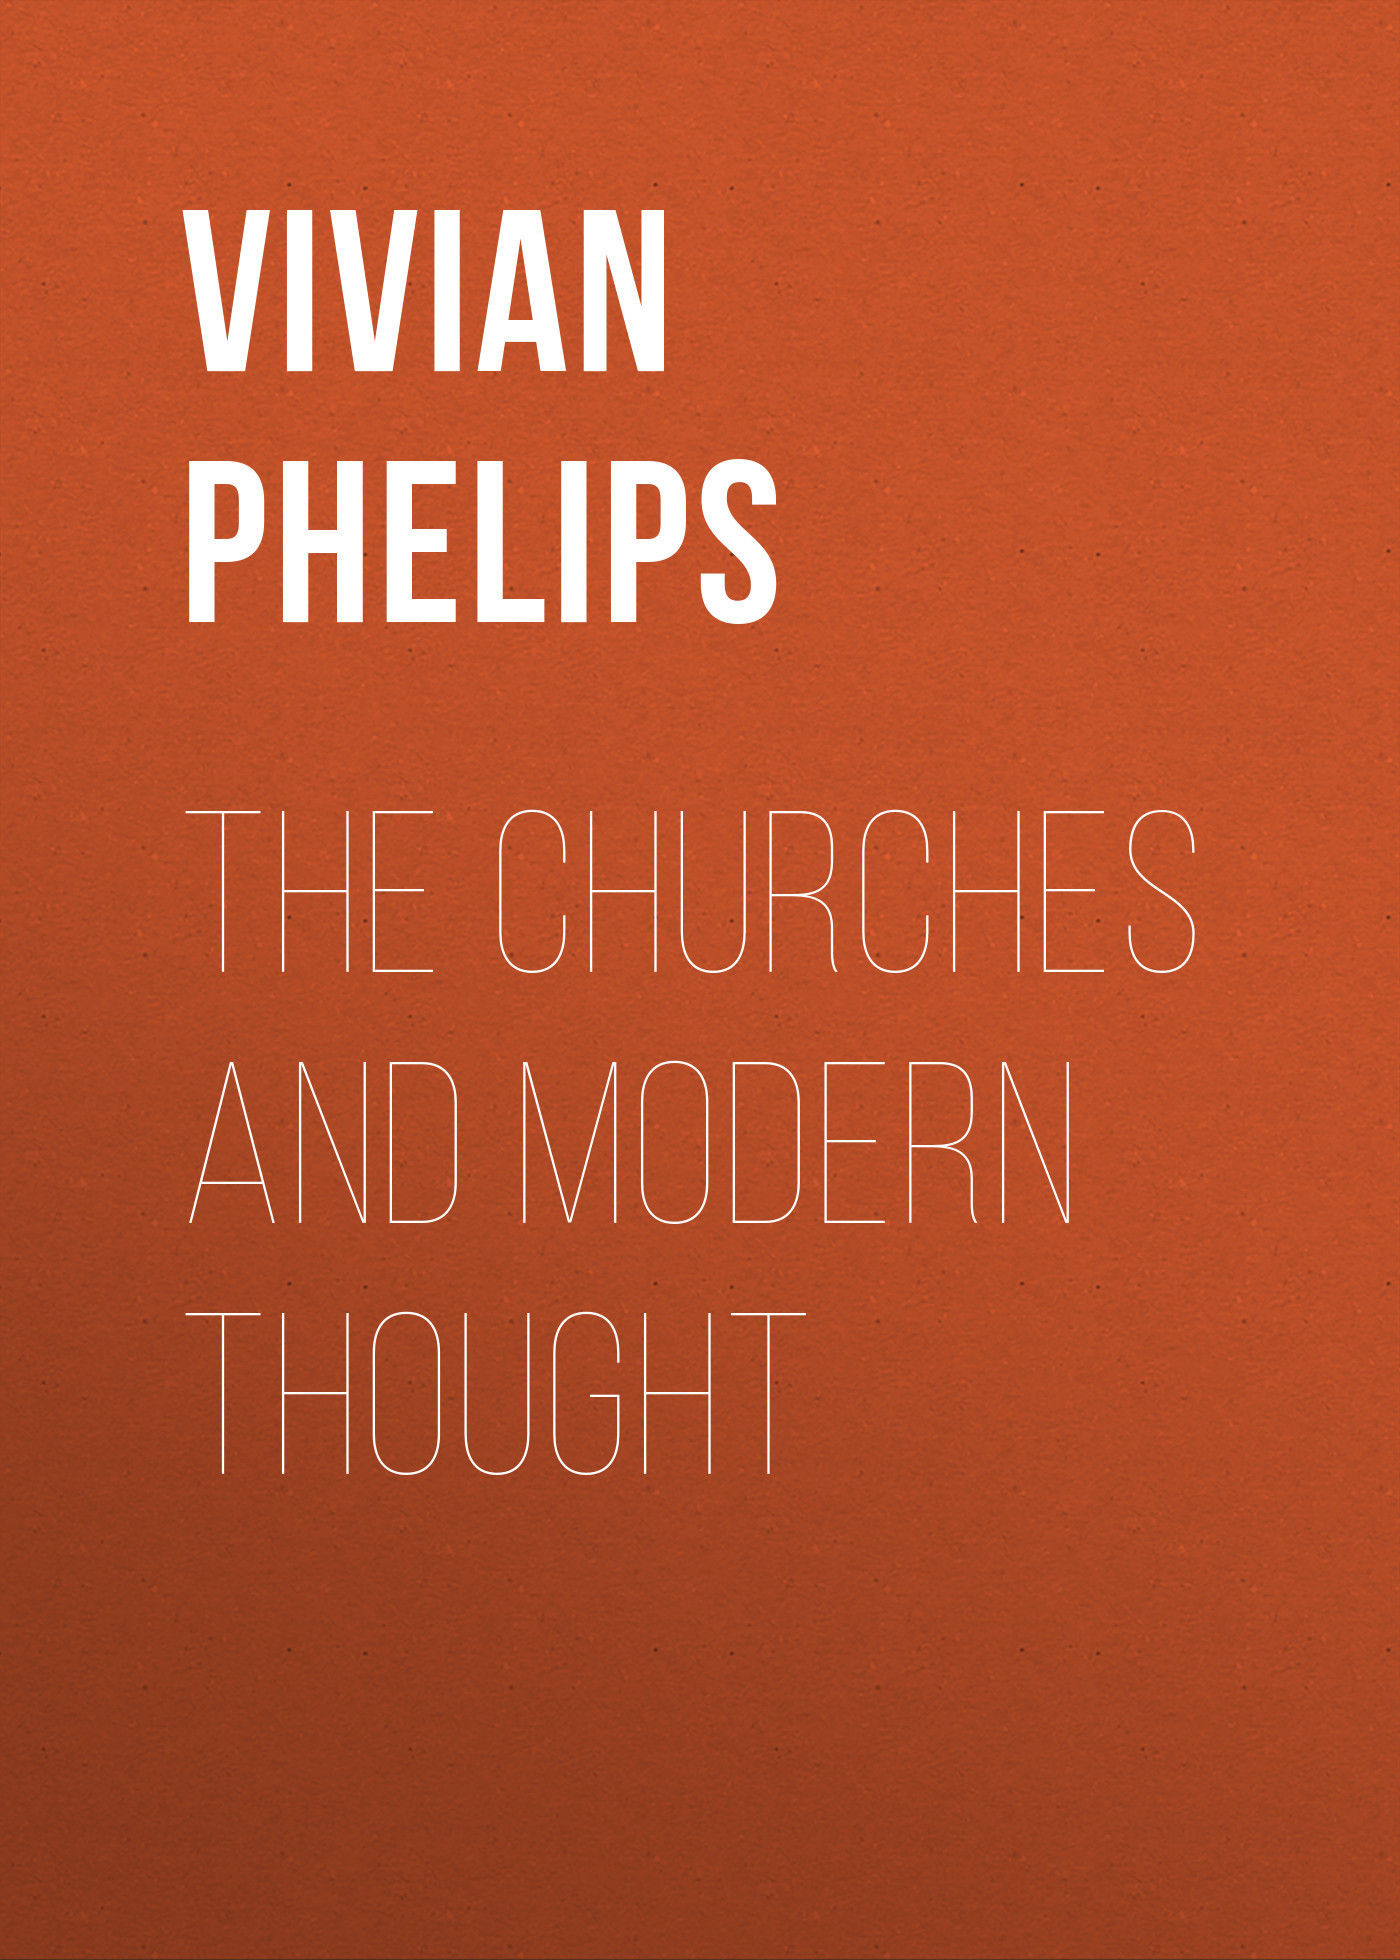 Vivian Phelips The Churches and Modern Thought vivian pribram nutrition and hiv